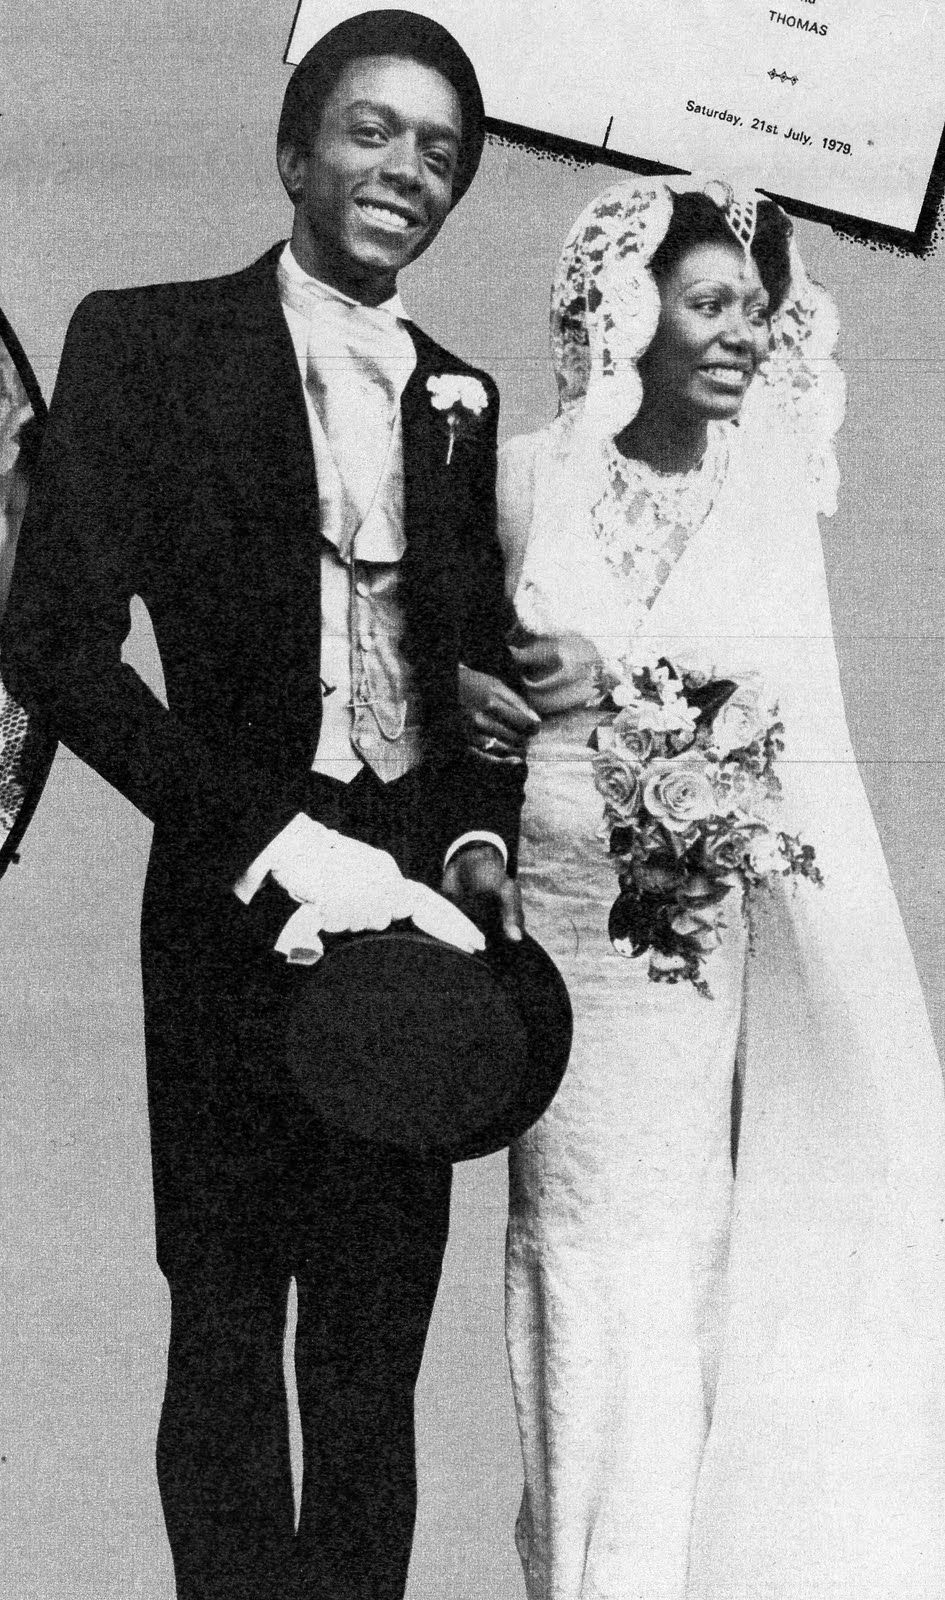 Thomas Pemberton And Liz Mitchell 1979 Black Music Celebrity Weddings Boney M